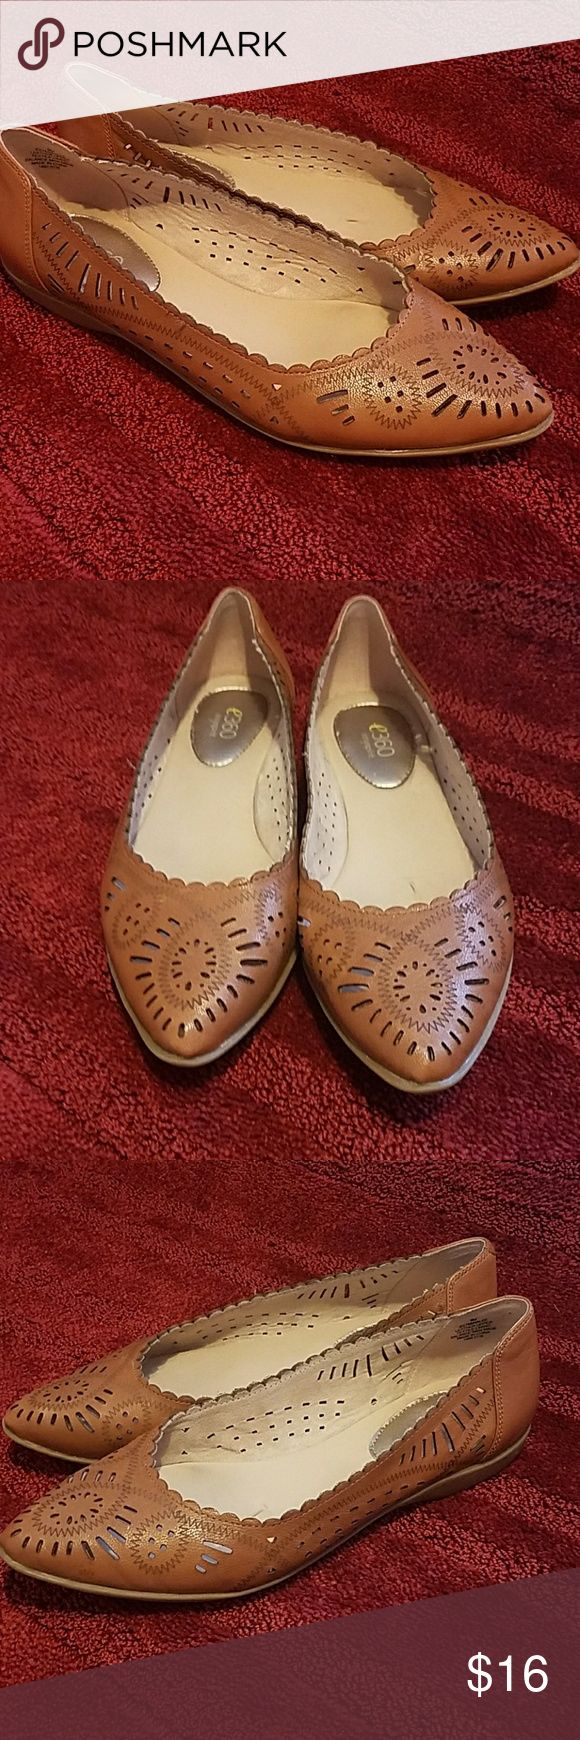 Easy Spirit Flats Leather uppers e360 Easy Spirit Flats. Beautiful cut-out pattern. These are in great condition very little signs of wear! e360 Easy Spirit Shoes Flats & Loafers